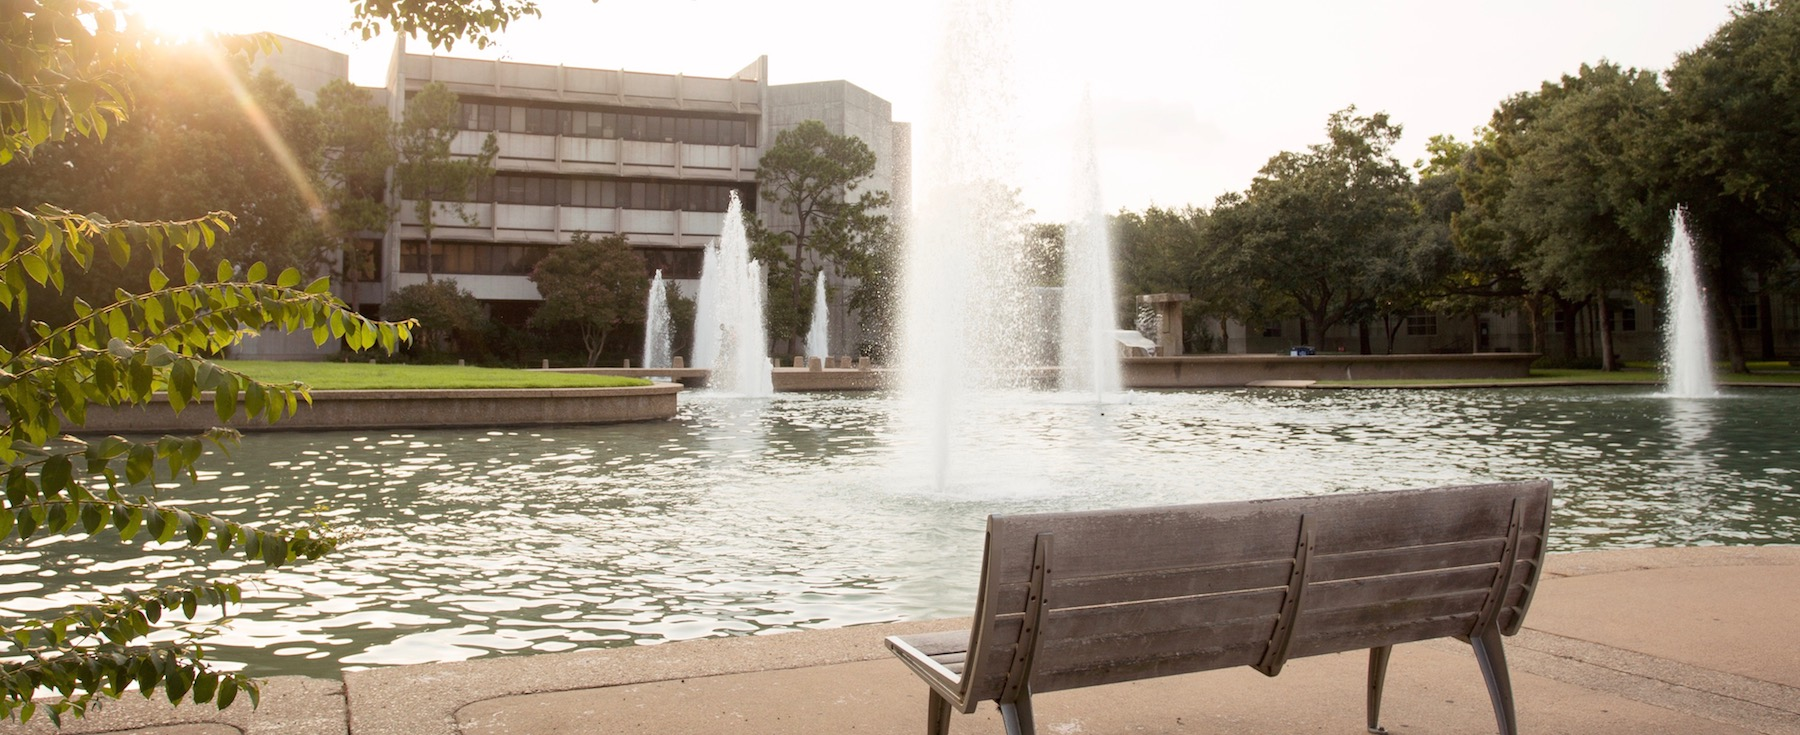 Forms and Procedures - University of Houston